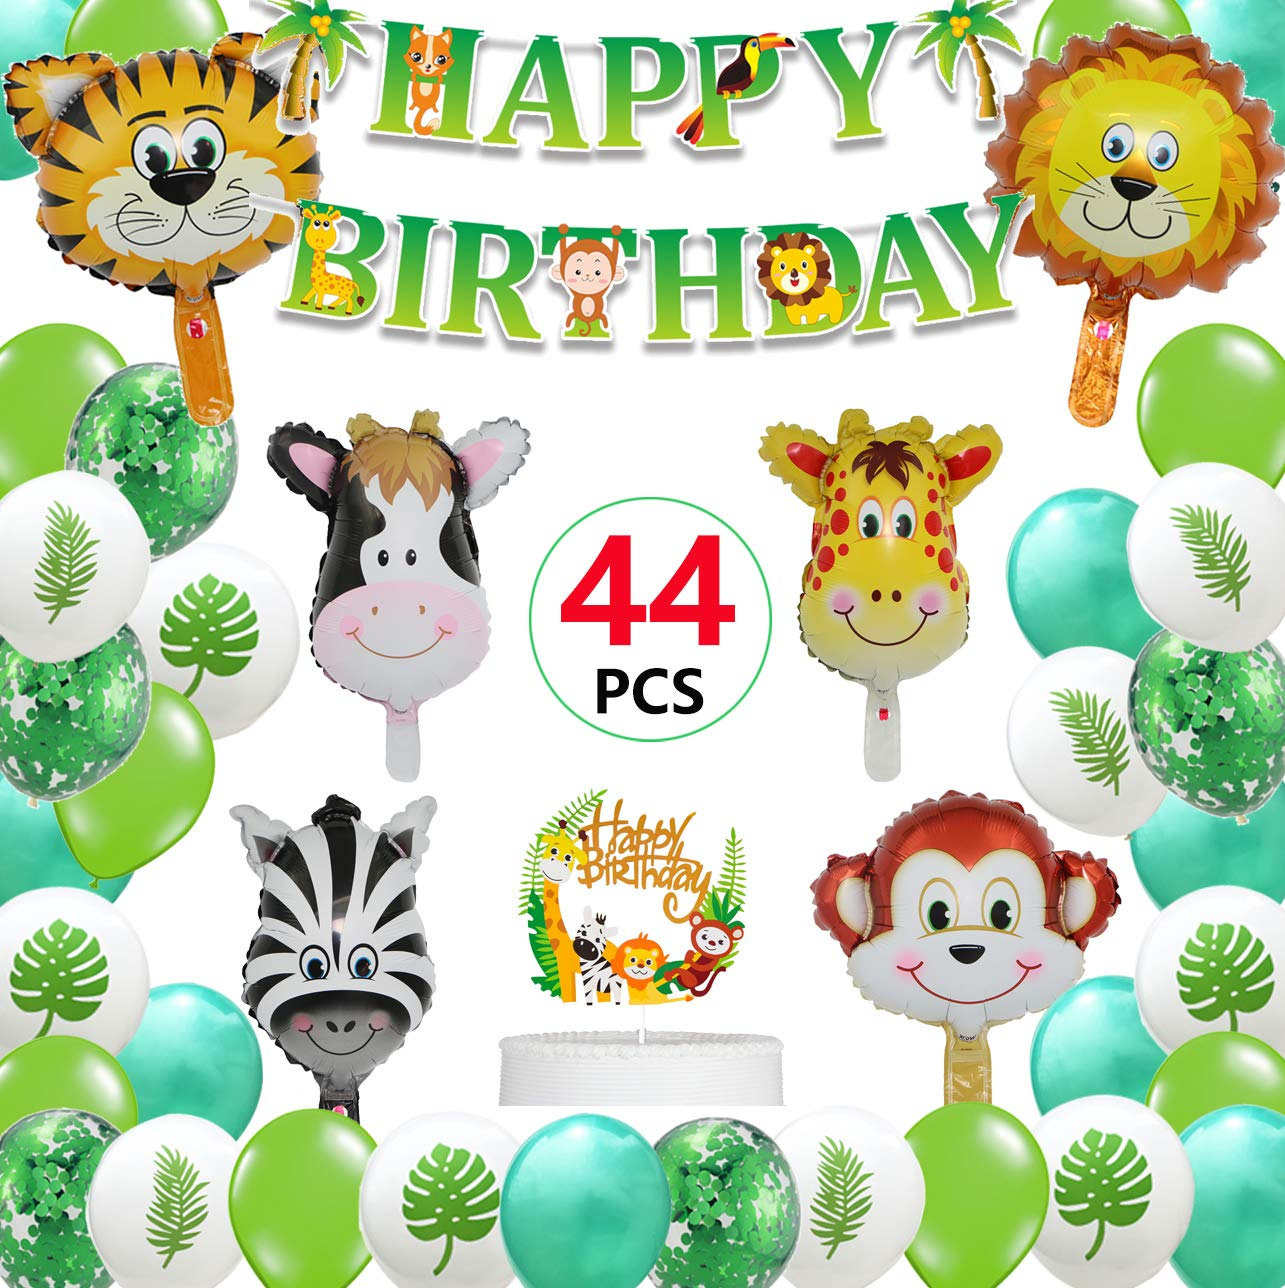 Jungle Safari Birthday Party Decorations, Happy Birthday Banner with Jumbo Forest Animal Balloons Cupcake Topper for Kids Boys Zoo Birthday Party Theme Decorations